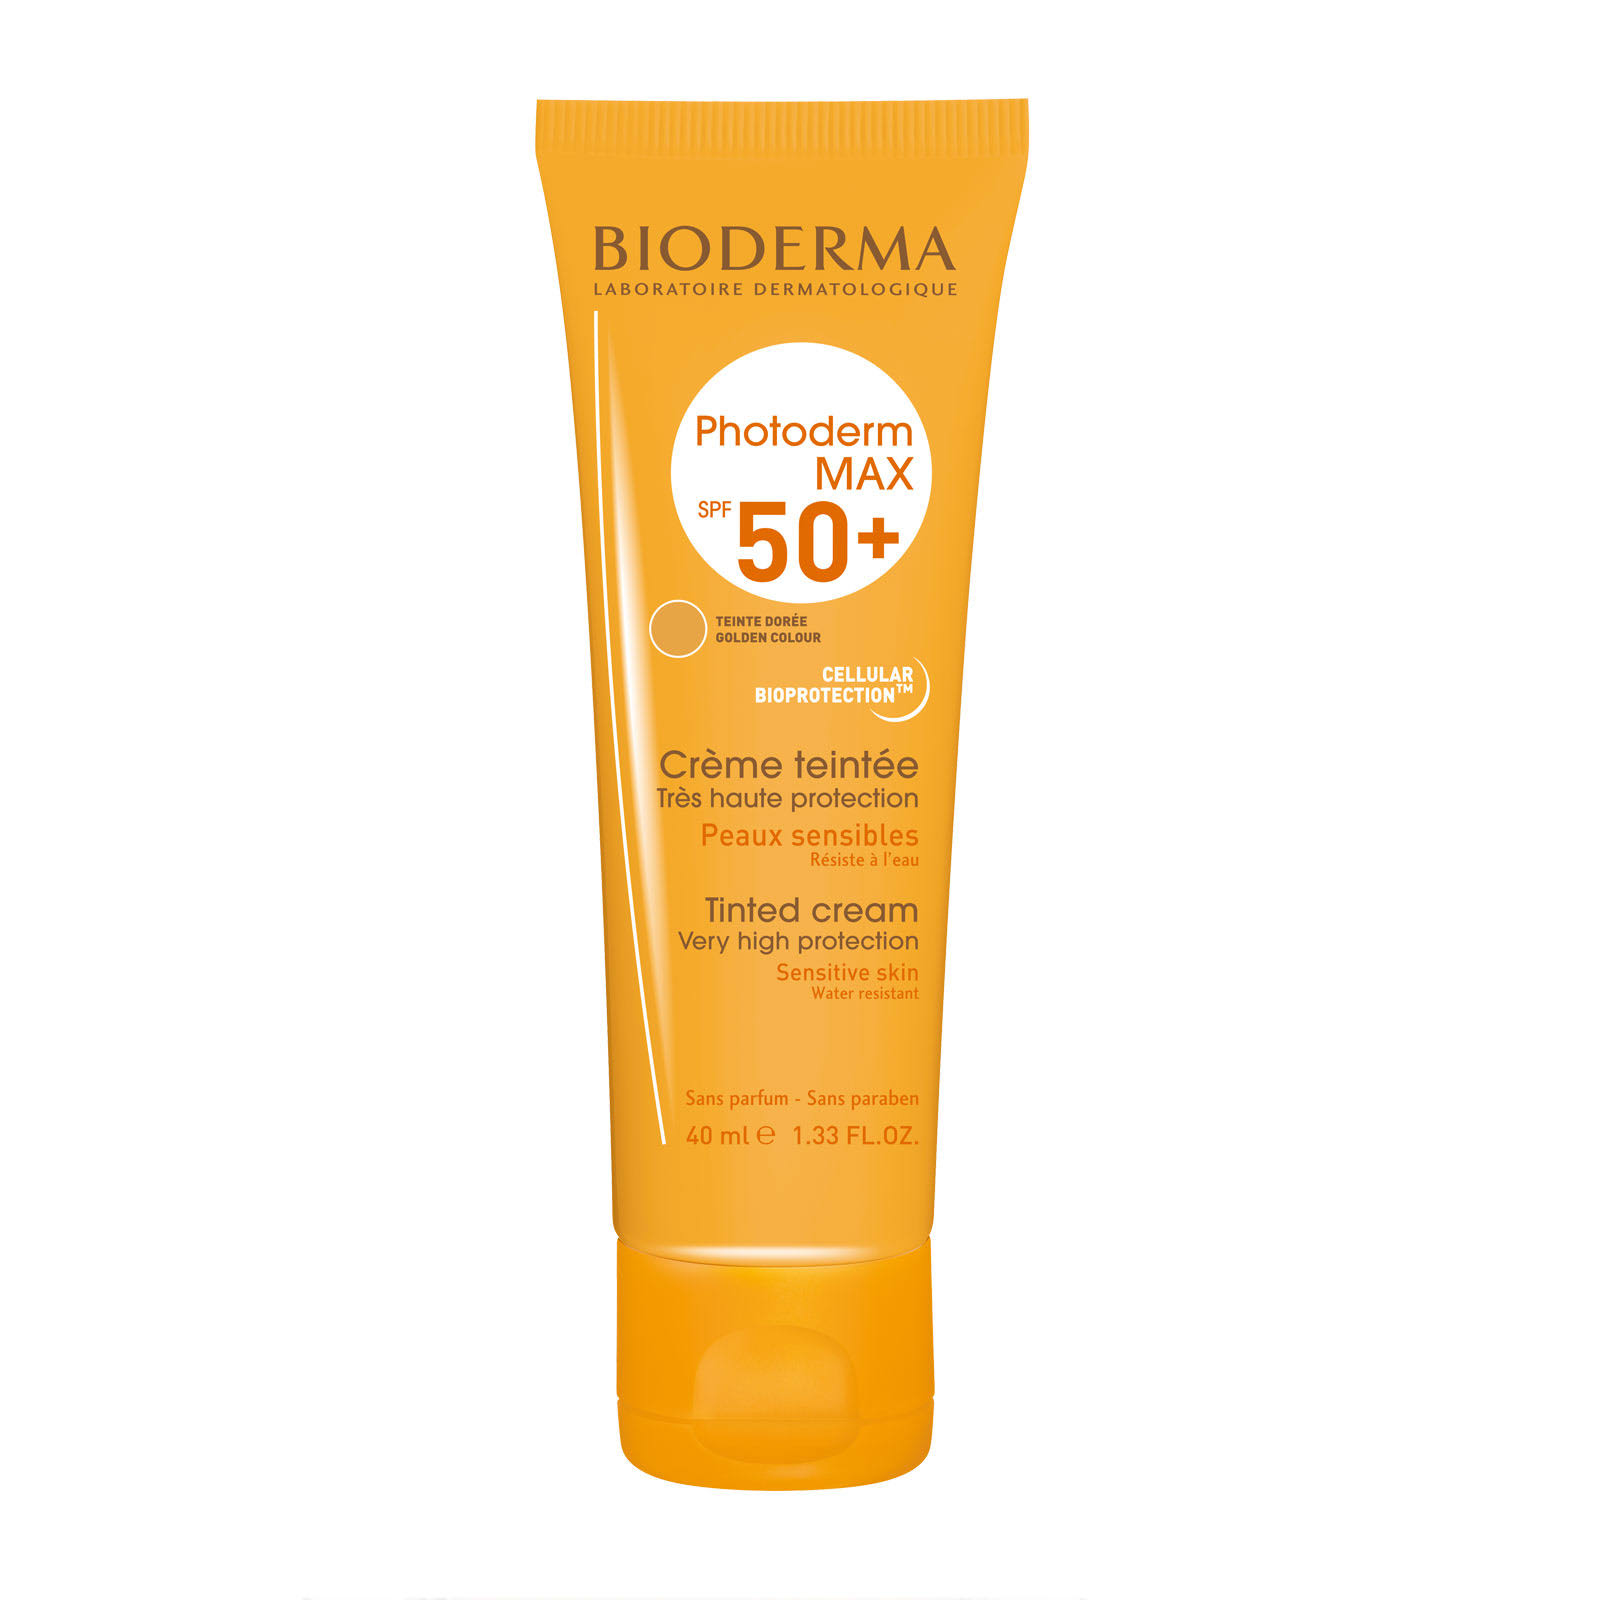 Bioderma Photoderm Max SPF 50+ Tinted Cream